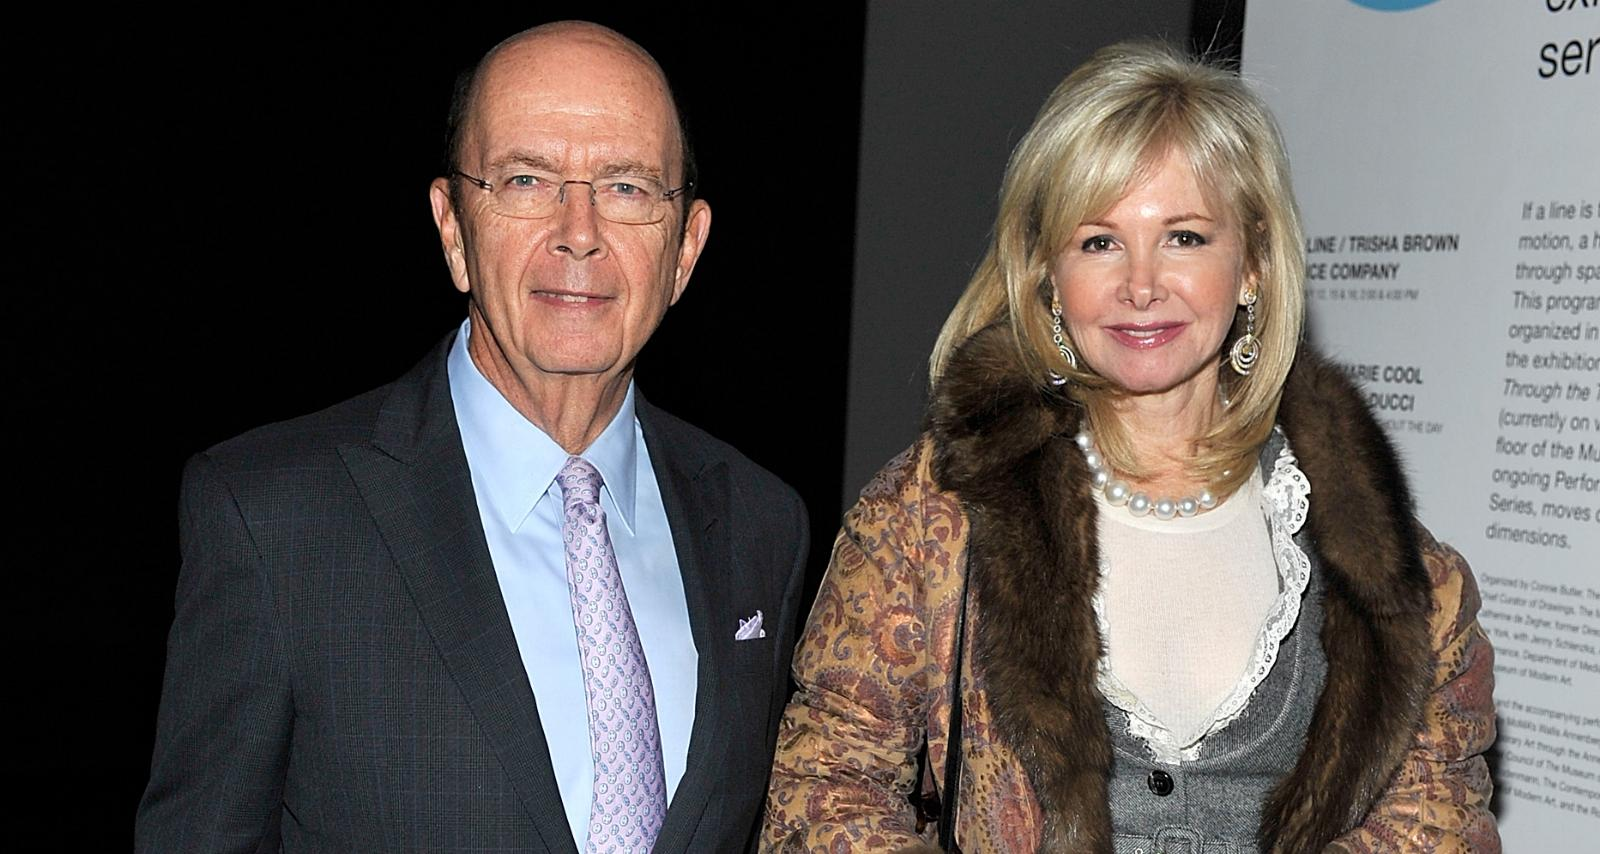 Facts about Wilbur Ross' wife Hilary Gear